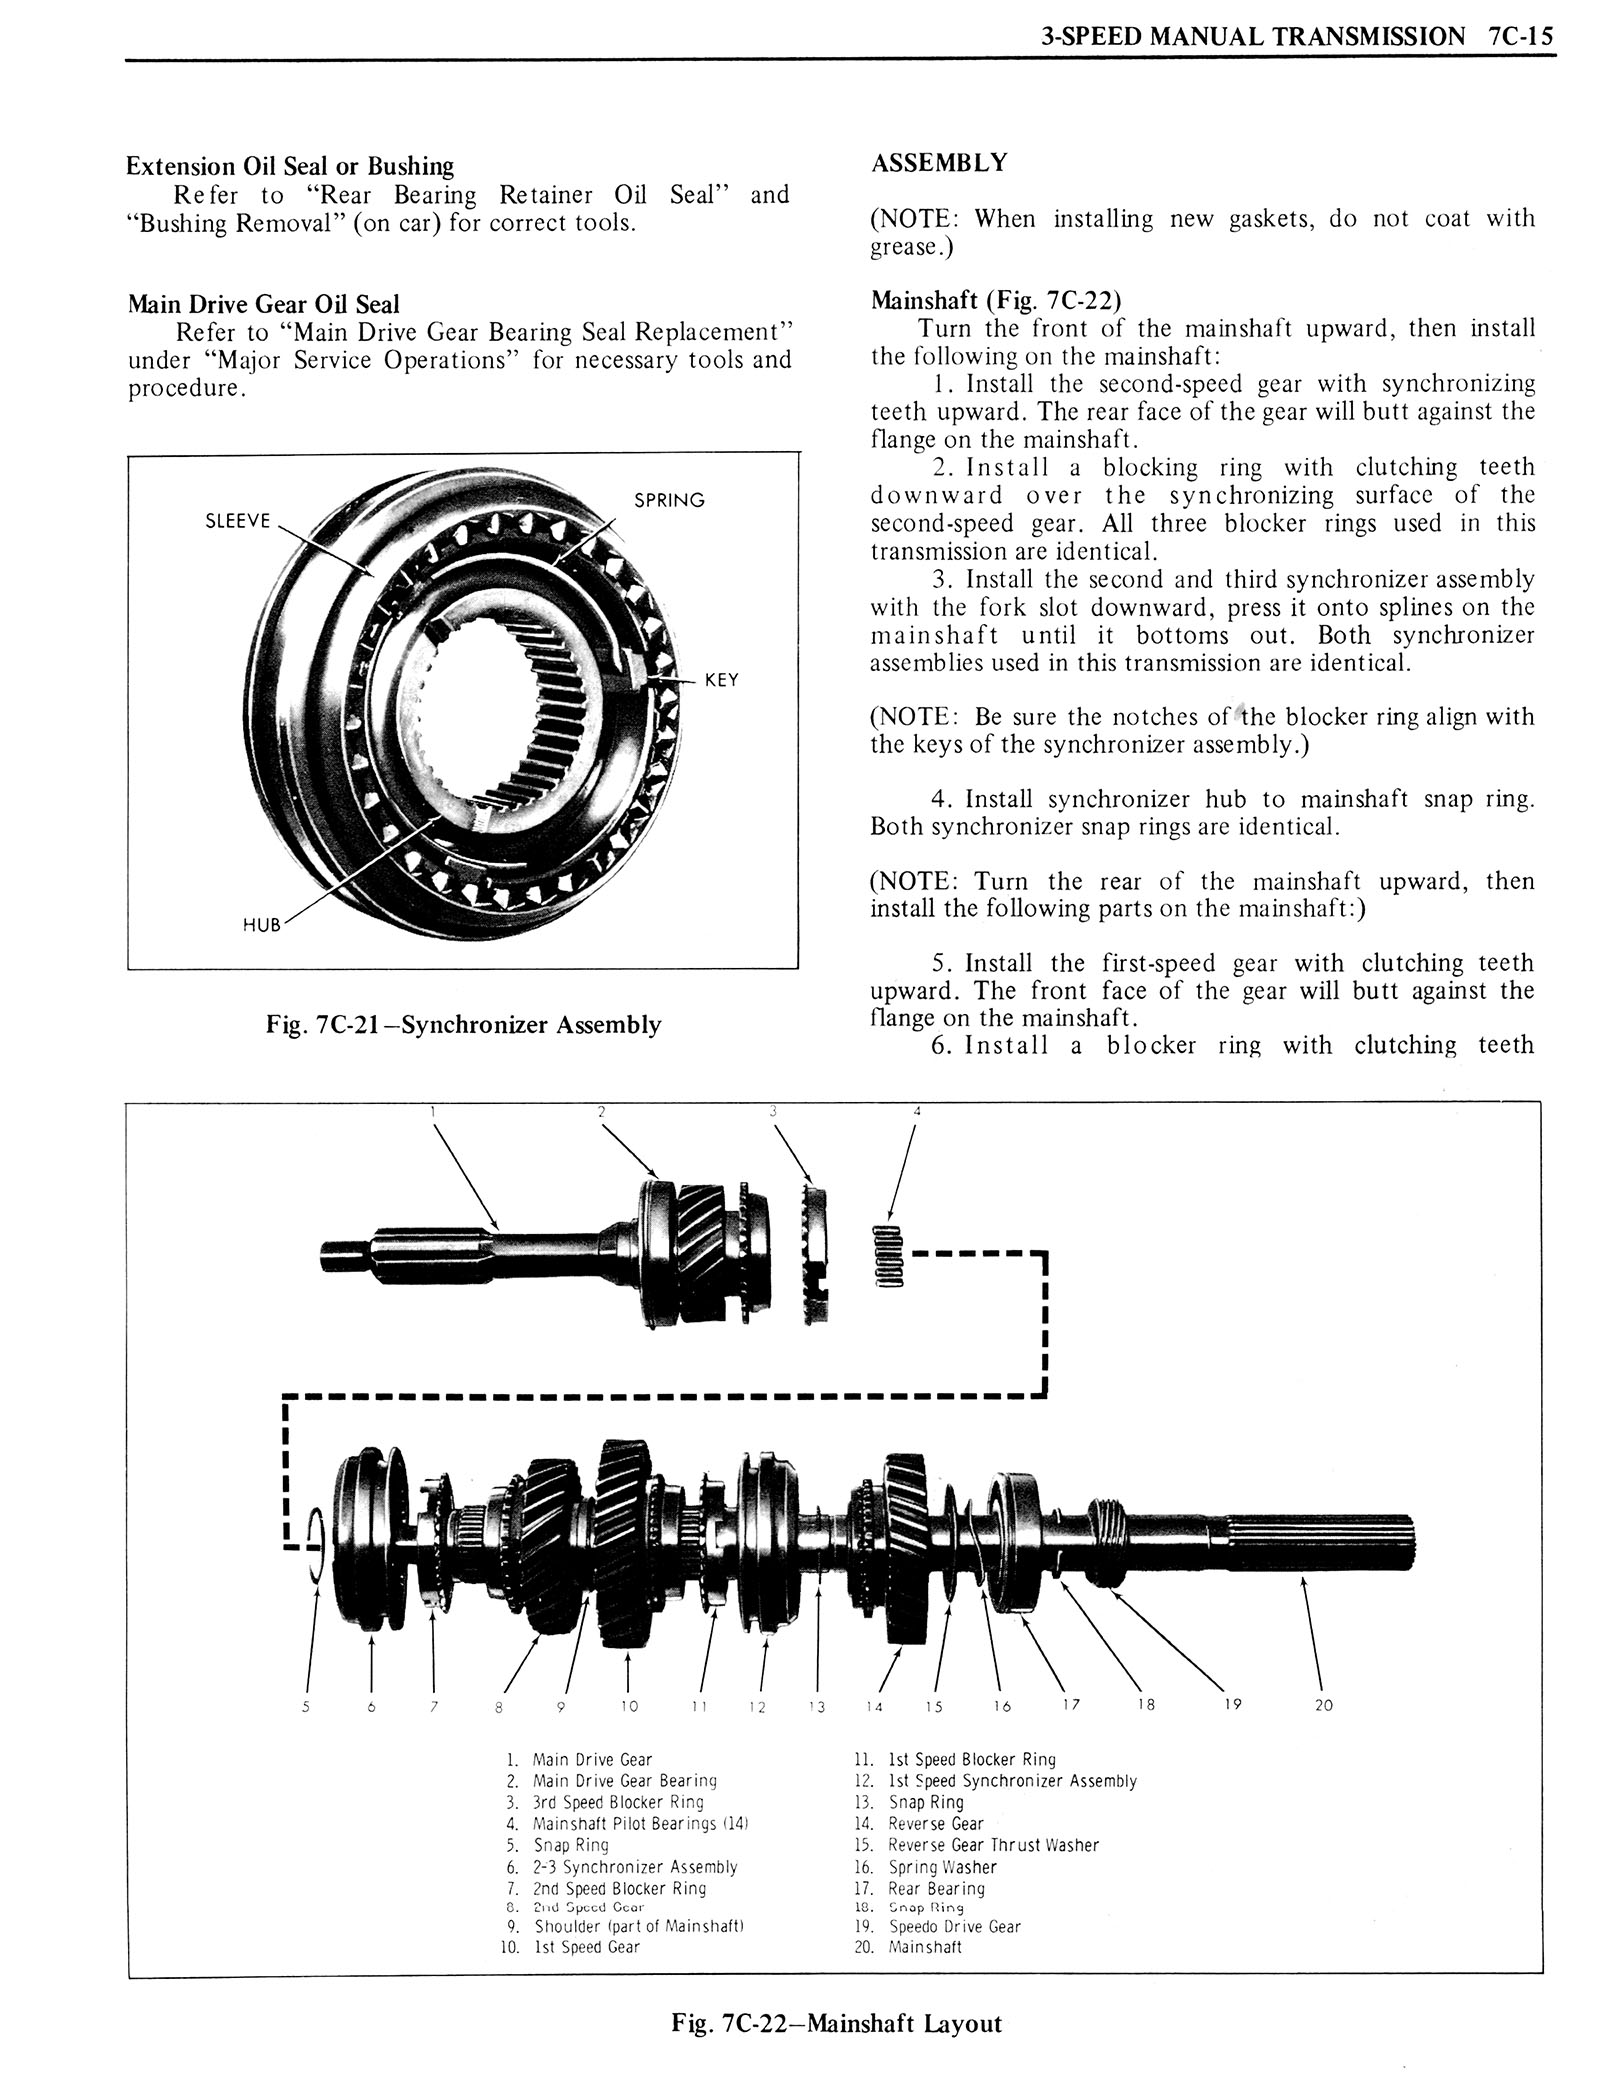 1976 Oldsmobile Service Manual page 887 of 1390